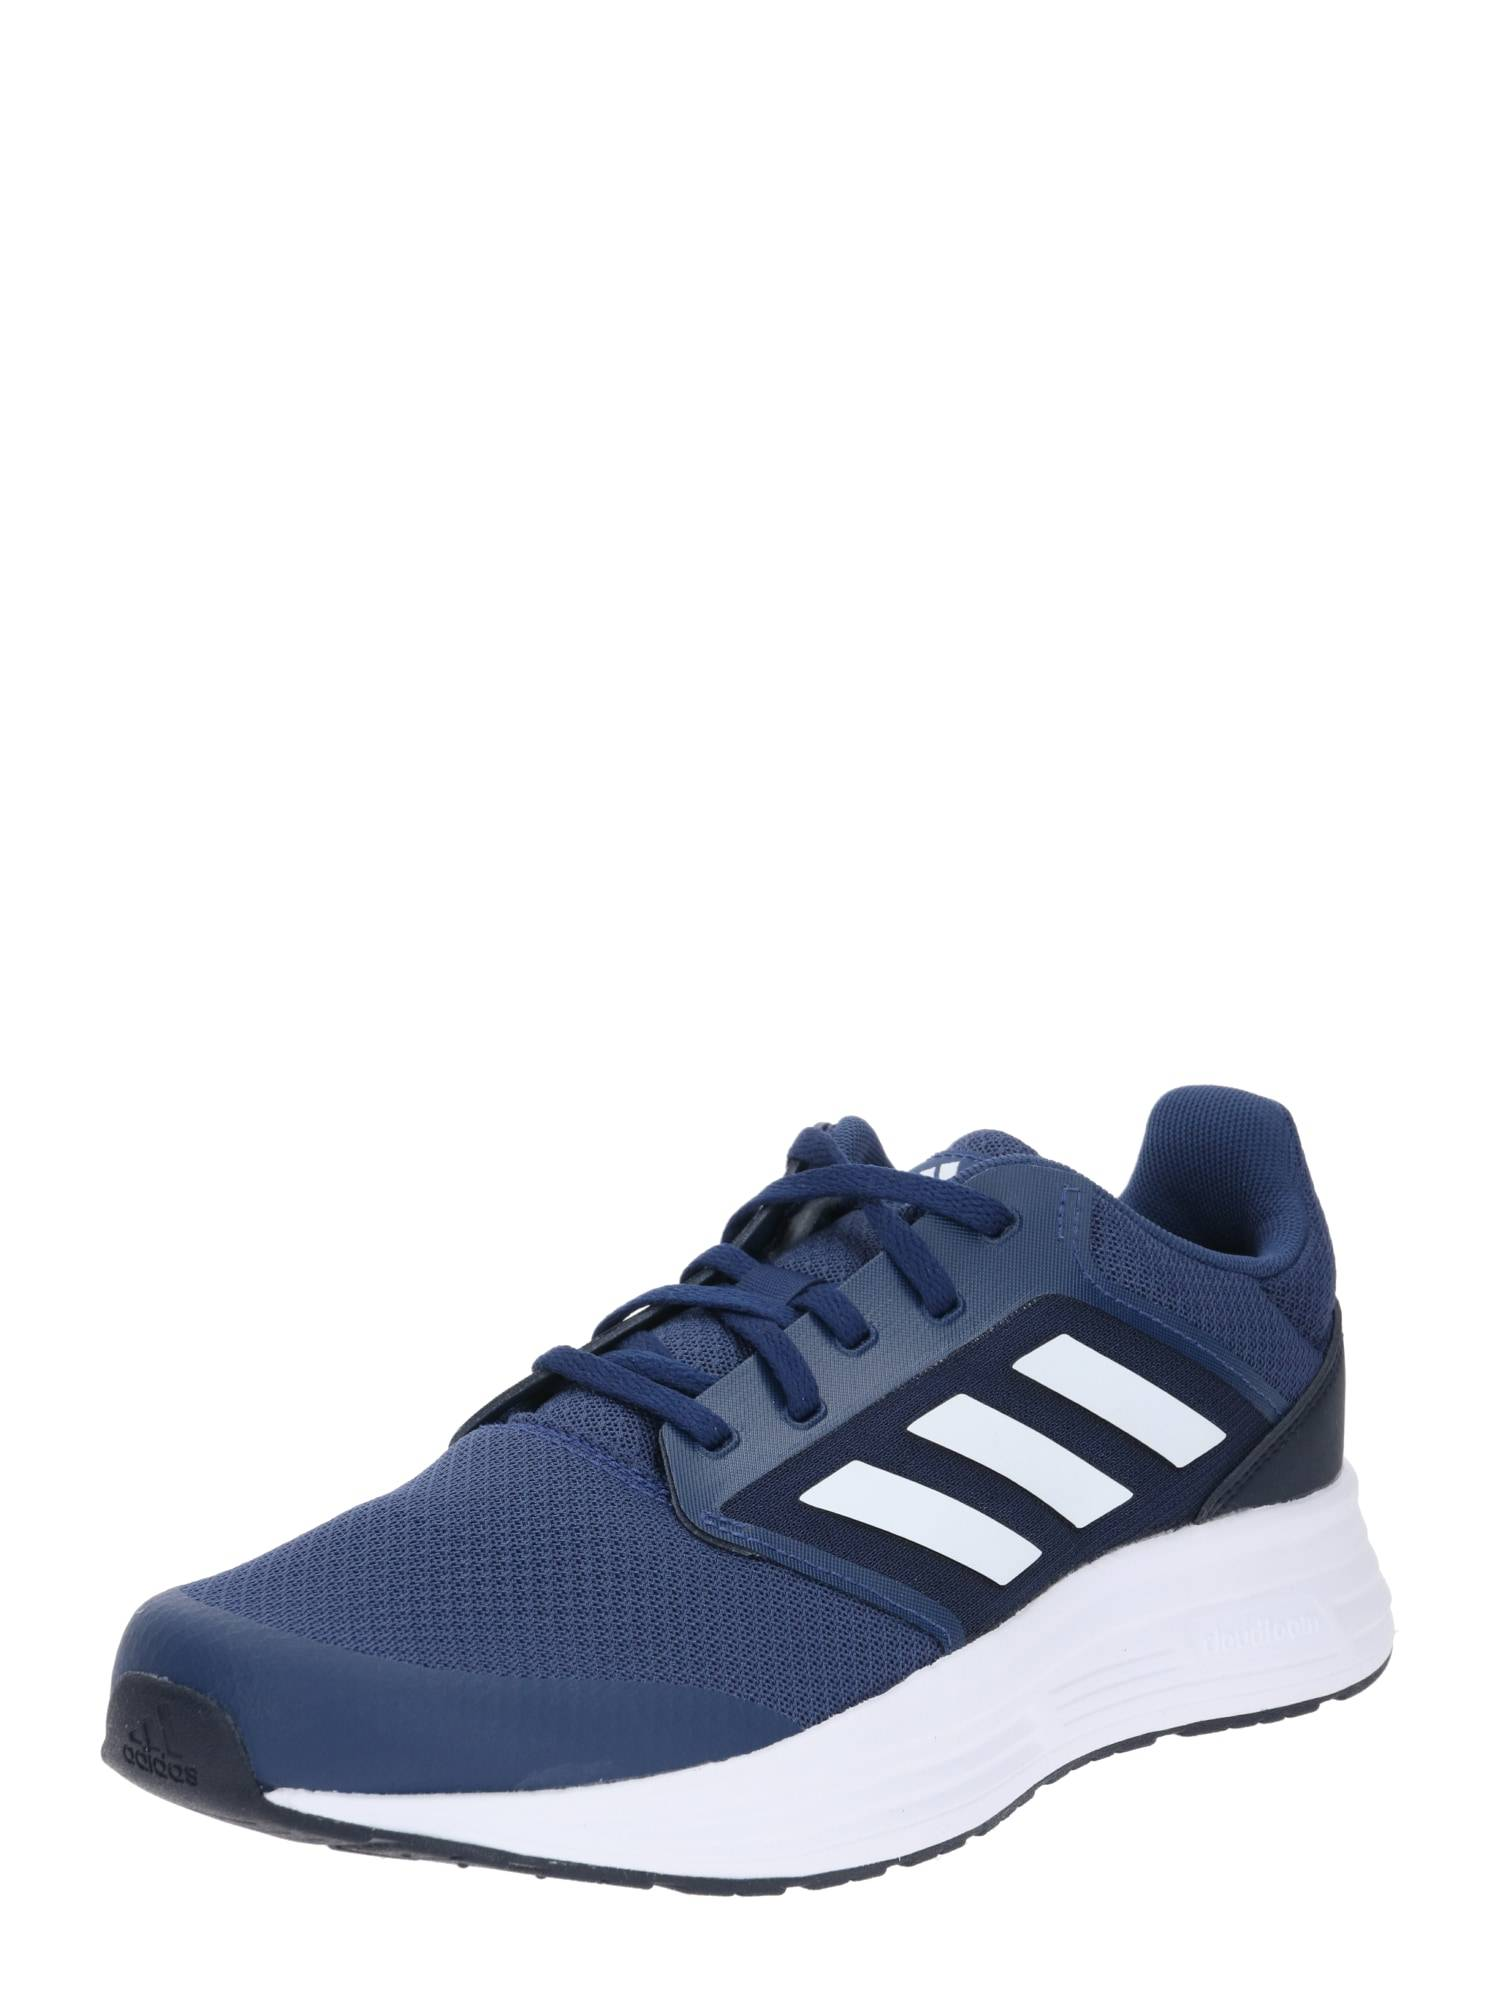 ADIDAS PERFORMANCE Chaussure de course 'Galaxy 5'  - Bleu - Taille: 44 - male